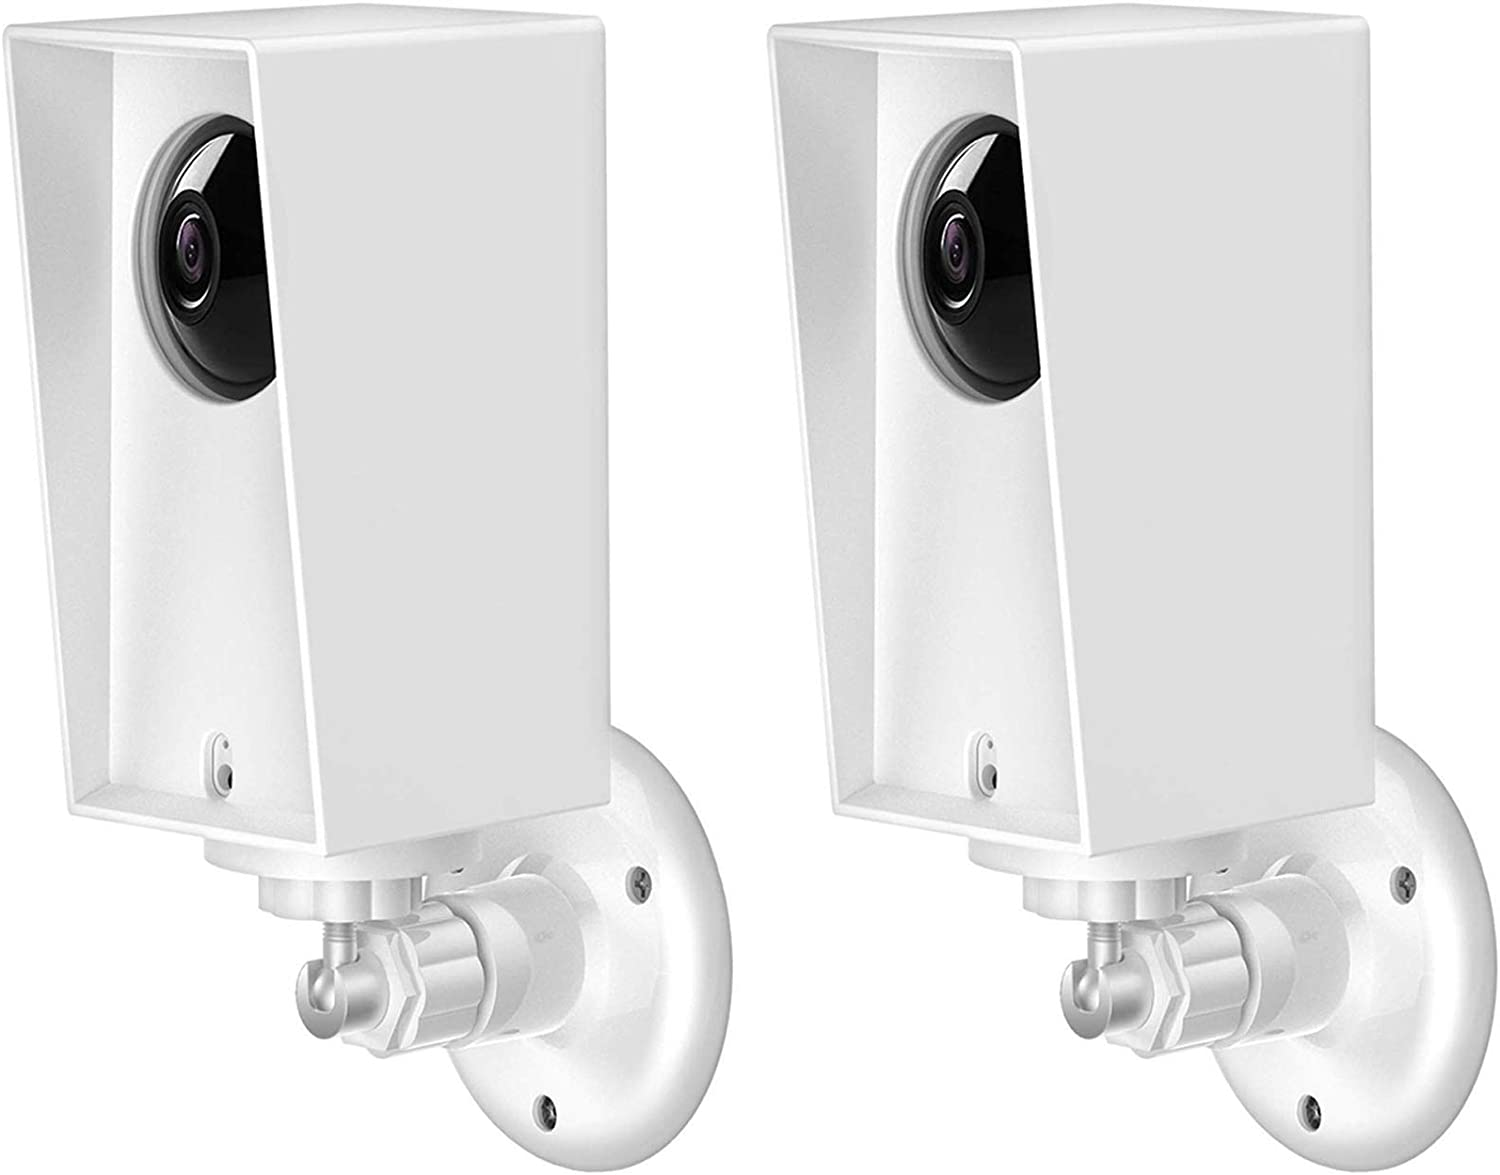 Wyze Cam Pan Wall Mount, Weather Proof Anti-Sun Glare and UV Protection Outdoor/Indoor Adjustable Bracket with Protective Skin Case for Wyze Cam Pan 1080p Security Camera (White(2pack))